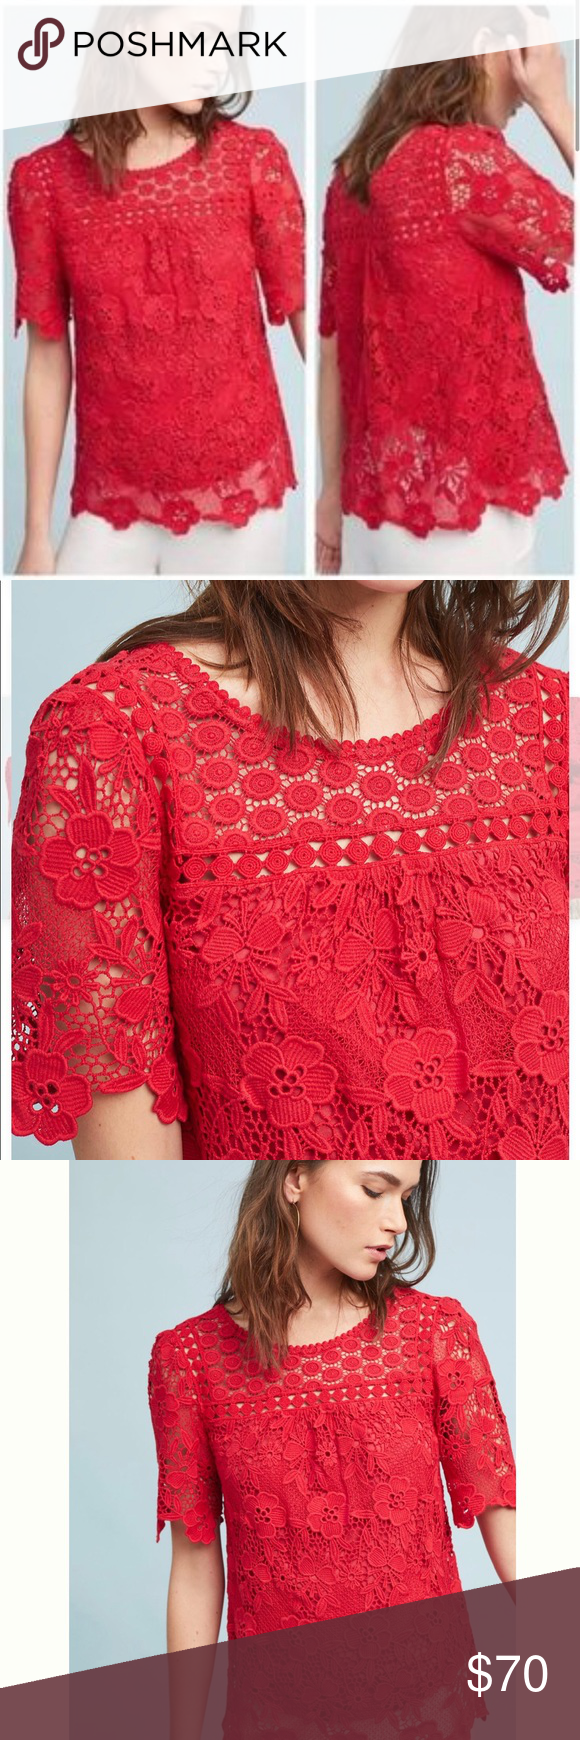 5a32a7d1e9202 Vanessa Virginia Lace Top by Anthropologie ♥ ♥️Beautiful Vanessa Virginia  Red Candace Lace Top from Anthropologie. Perfect for Valentines Day!